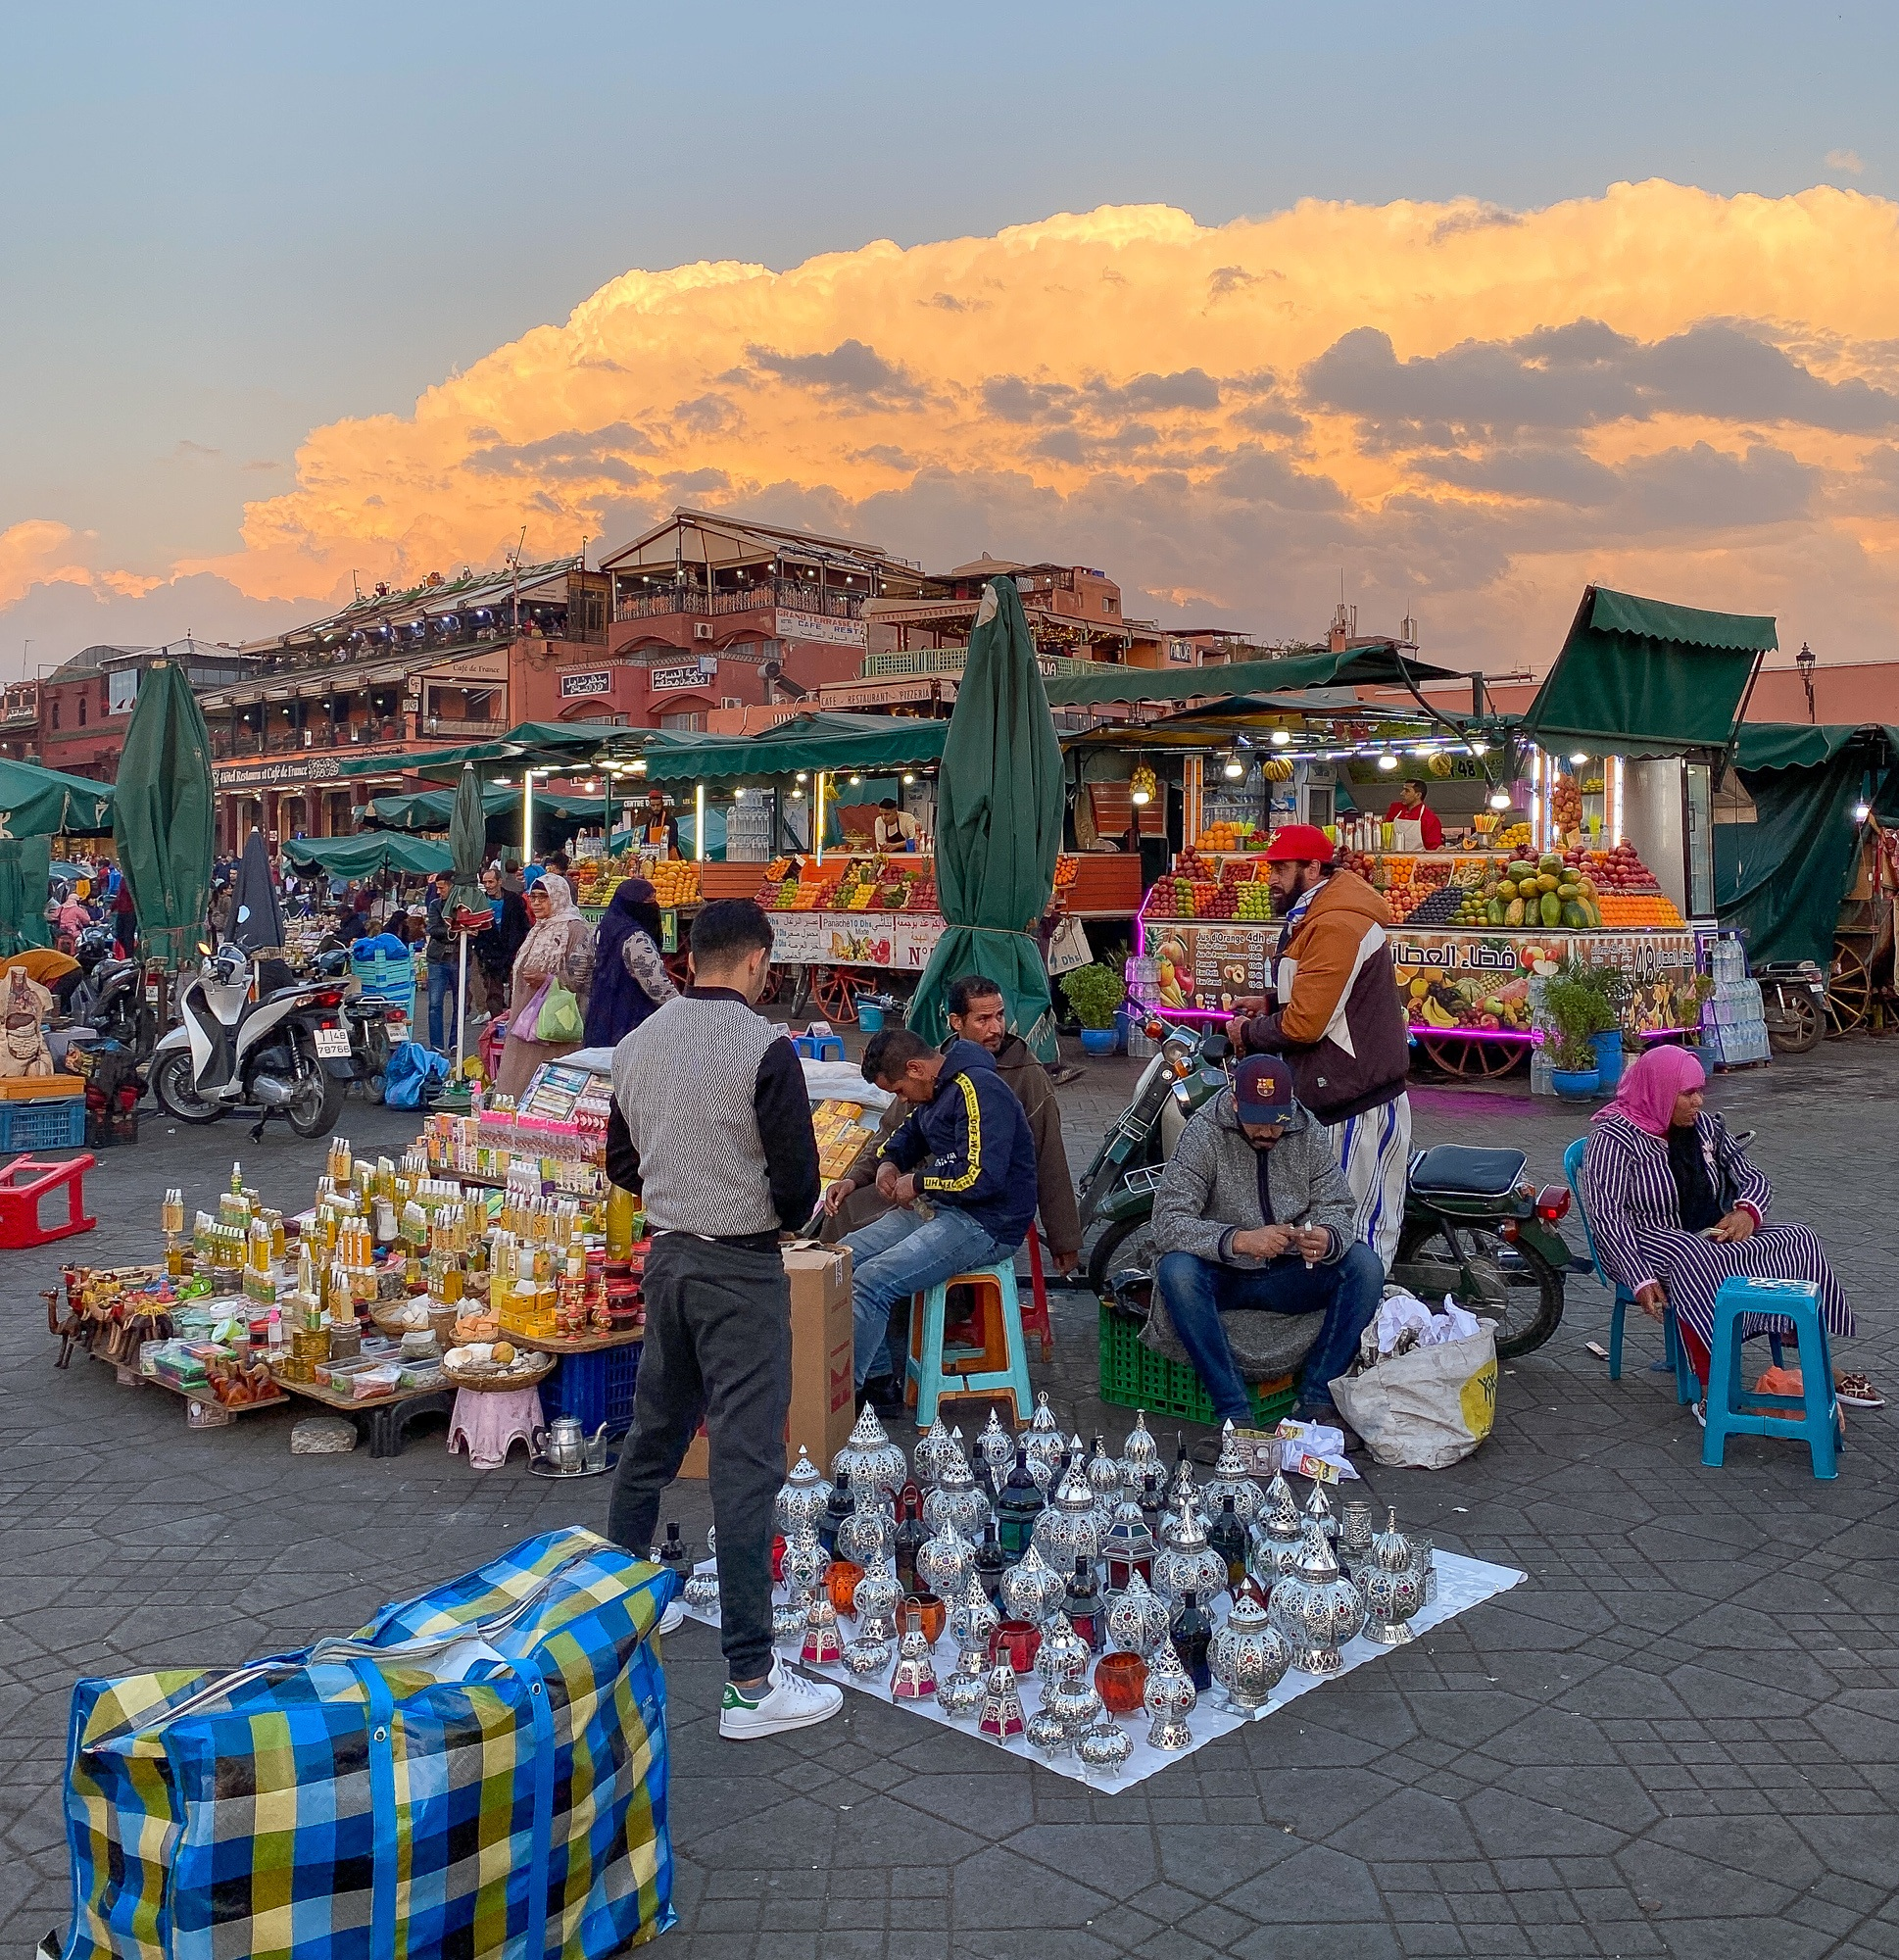 Djemaa el Fna Square in Marrakech